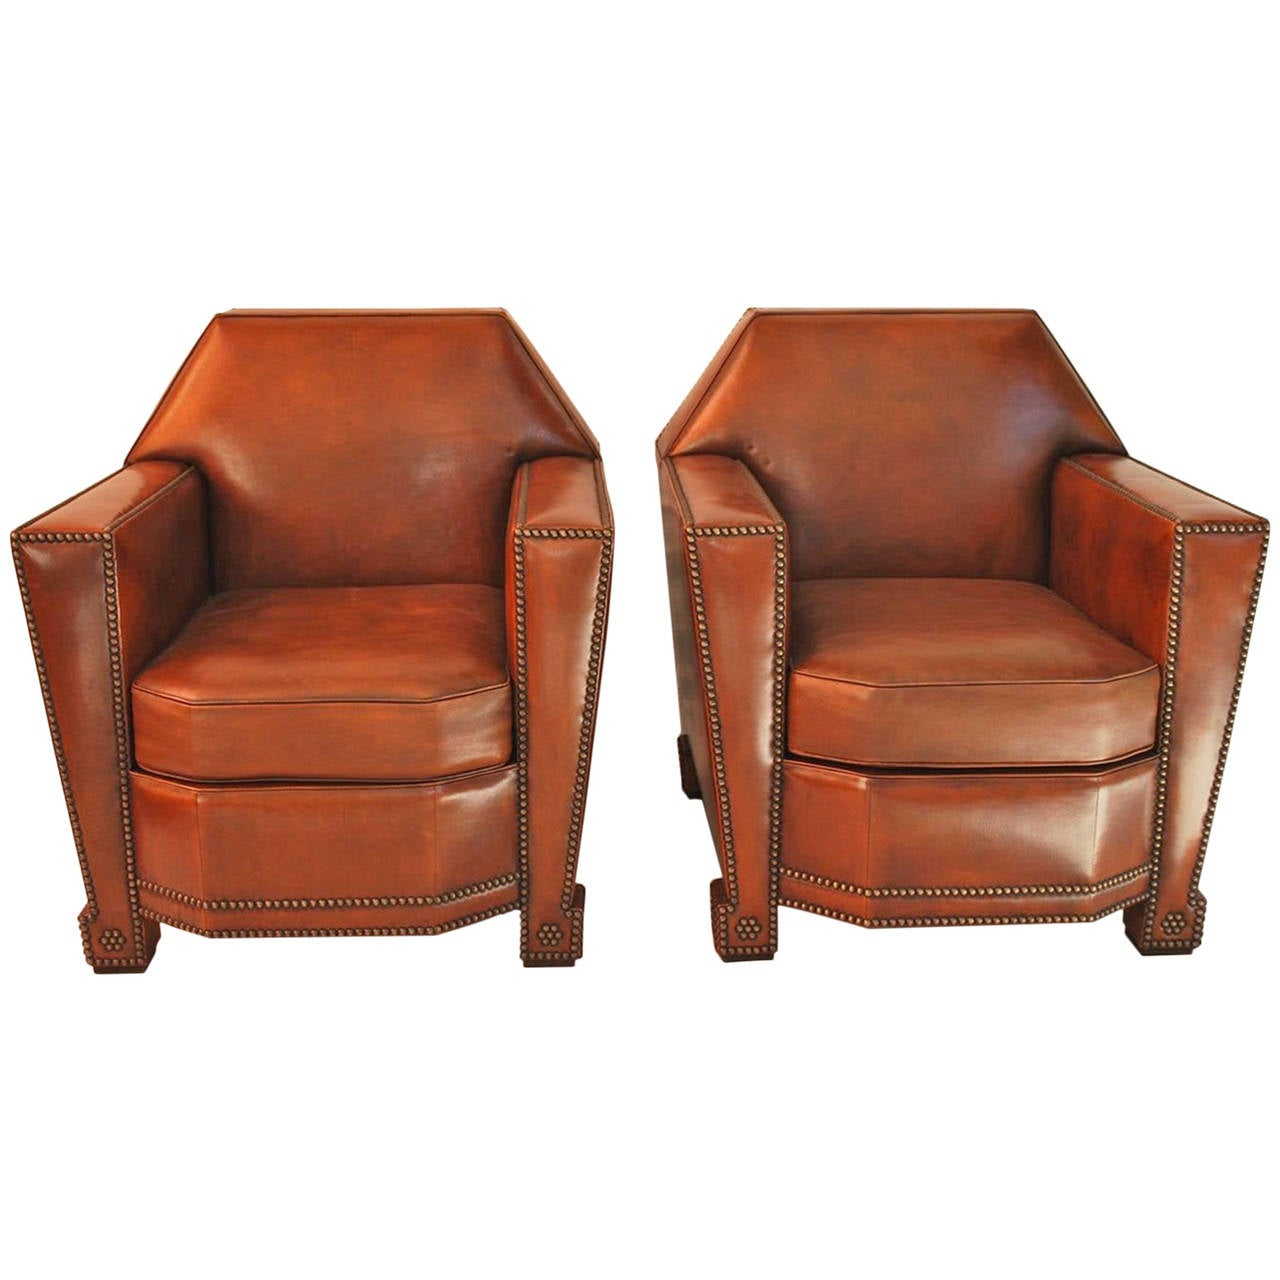 Pair Of French Art Deco Style Club Chairs At 1stdibs